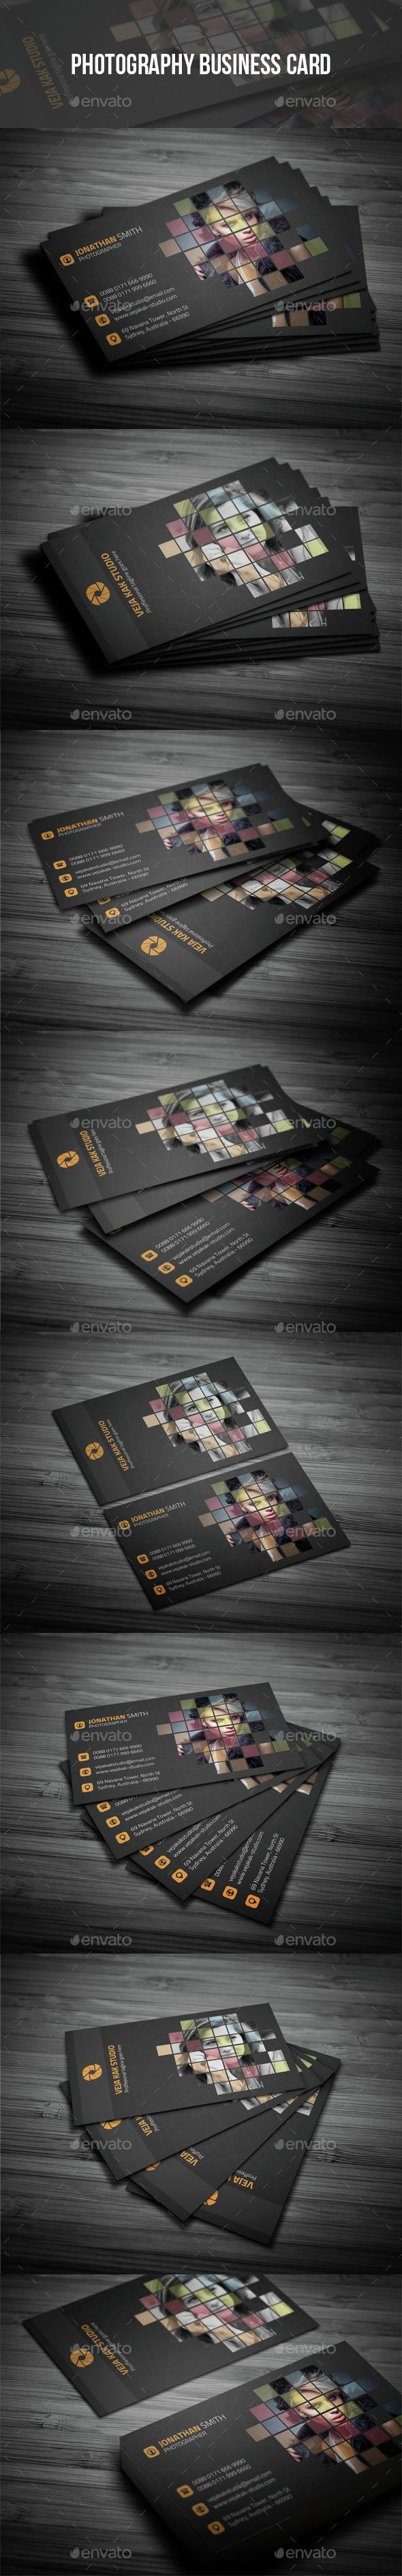 Photography Business Card - Creative Business Card Template PSD. Download here: http://graphicriver.net/item/photography-business-card/11942535?s_rank=1772&ref=yinkira